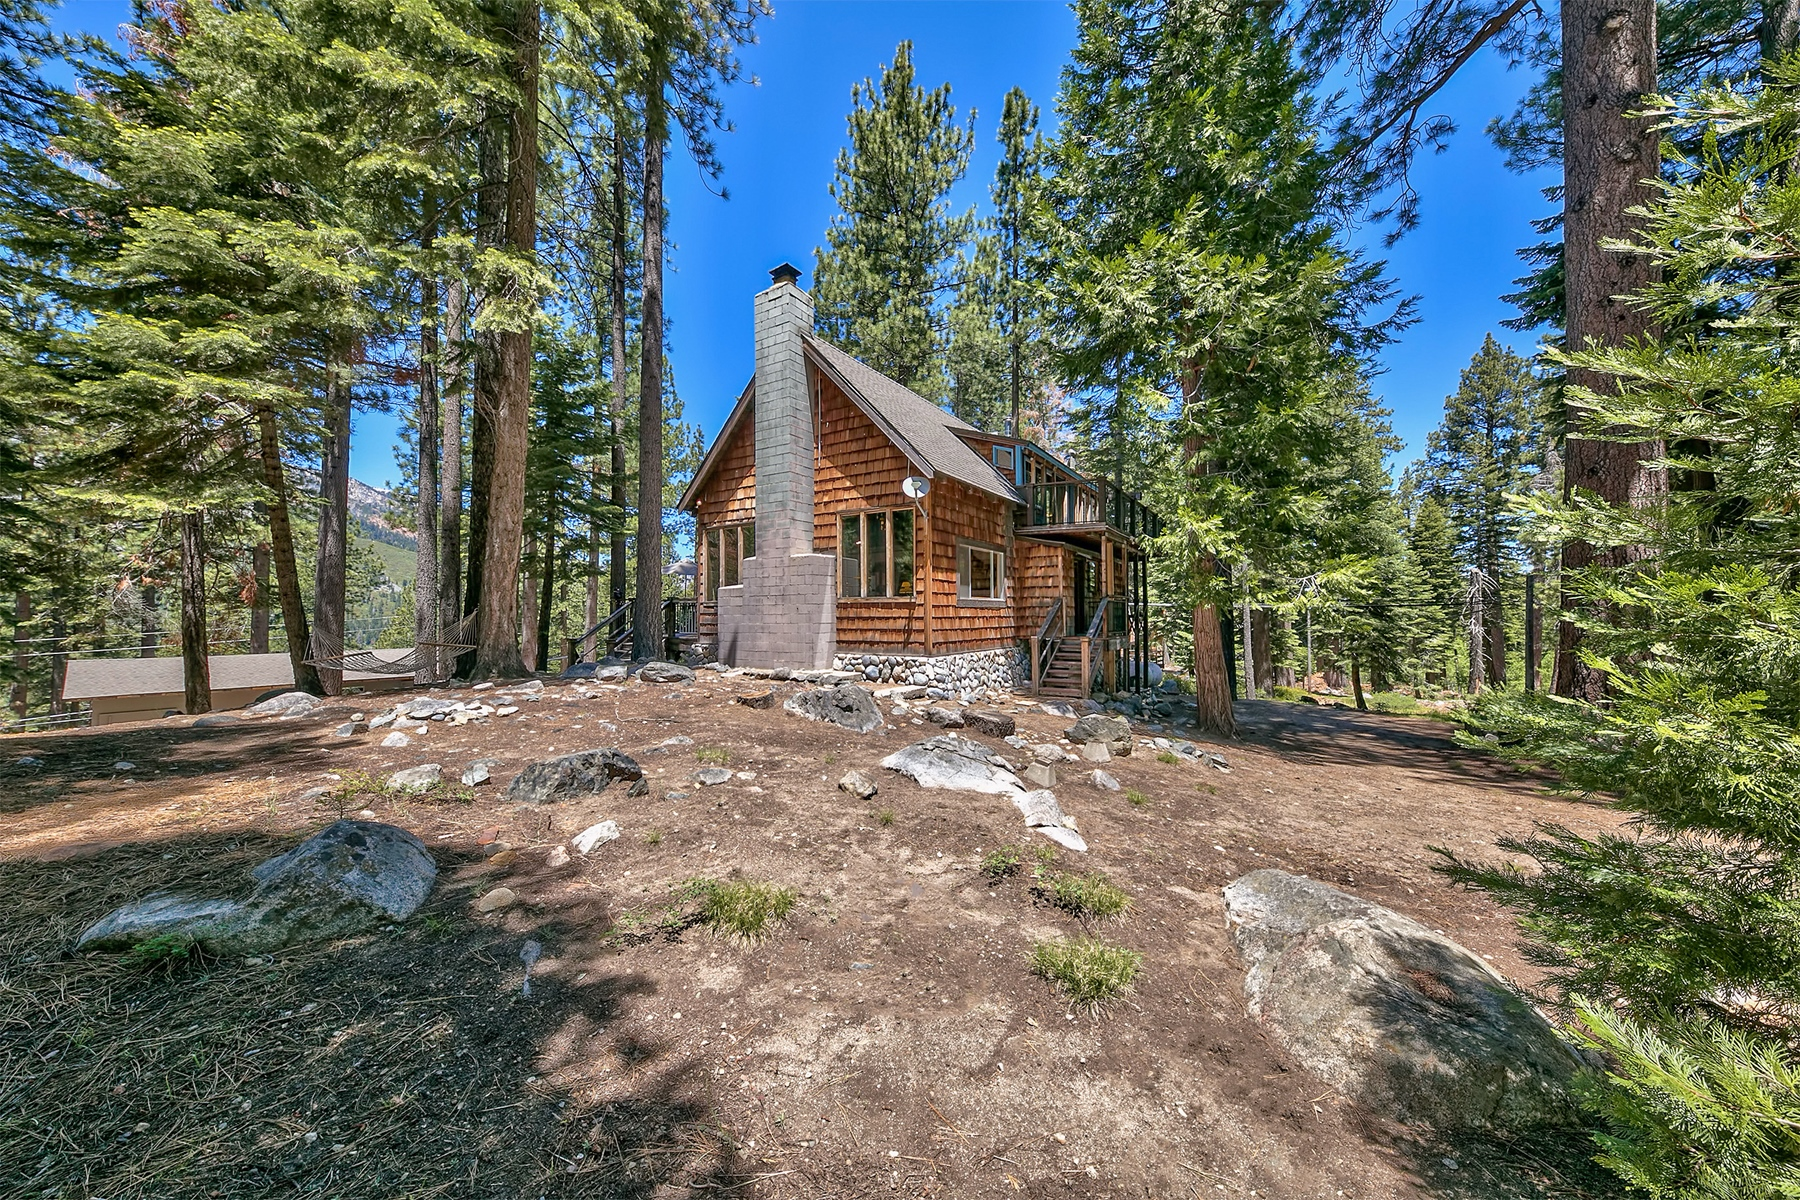 Property for Active at 936 Emigrant Road, South Lake Tahoe, CA 96150 936 Emigrant Road South Lake Tahoe, California 96150 United States